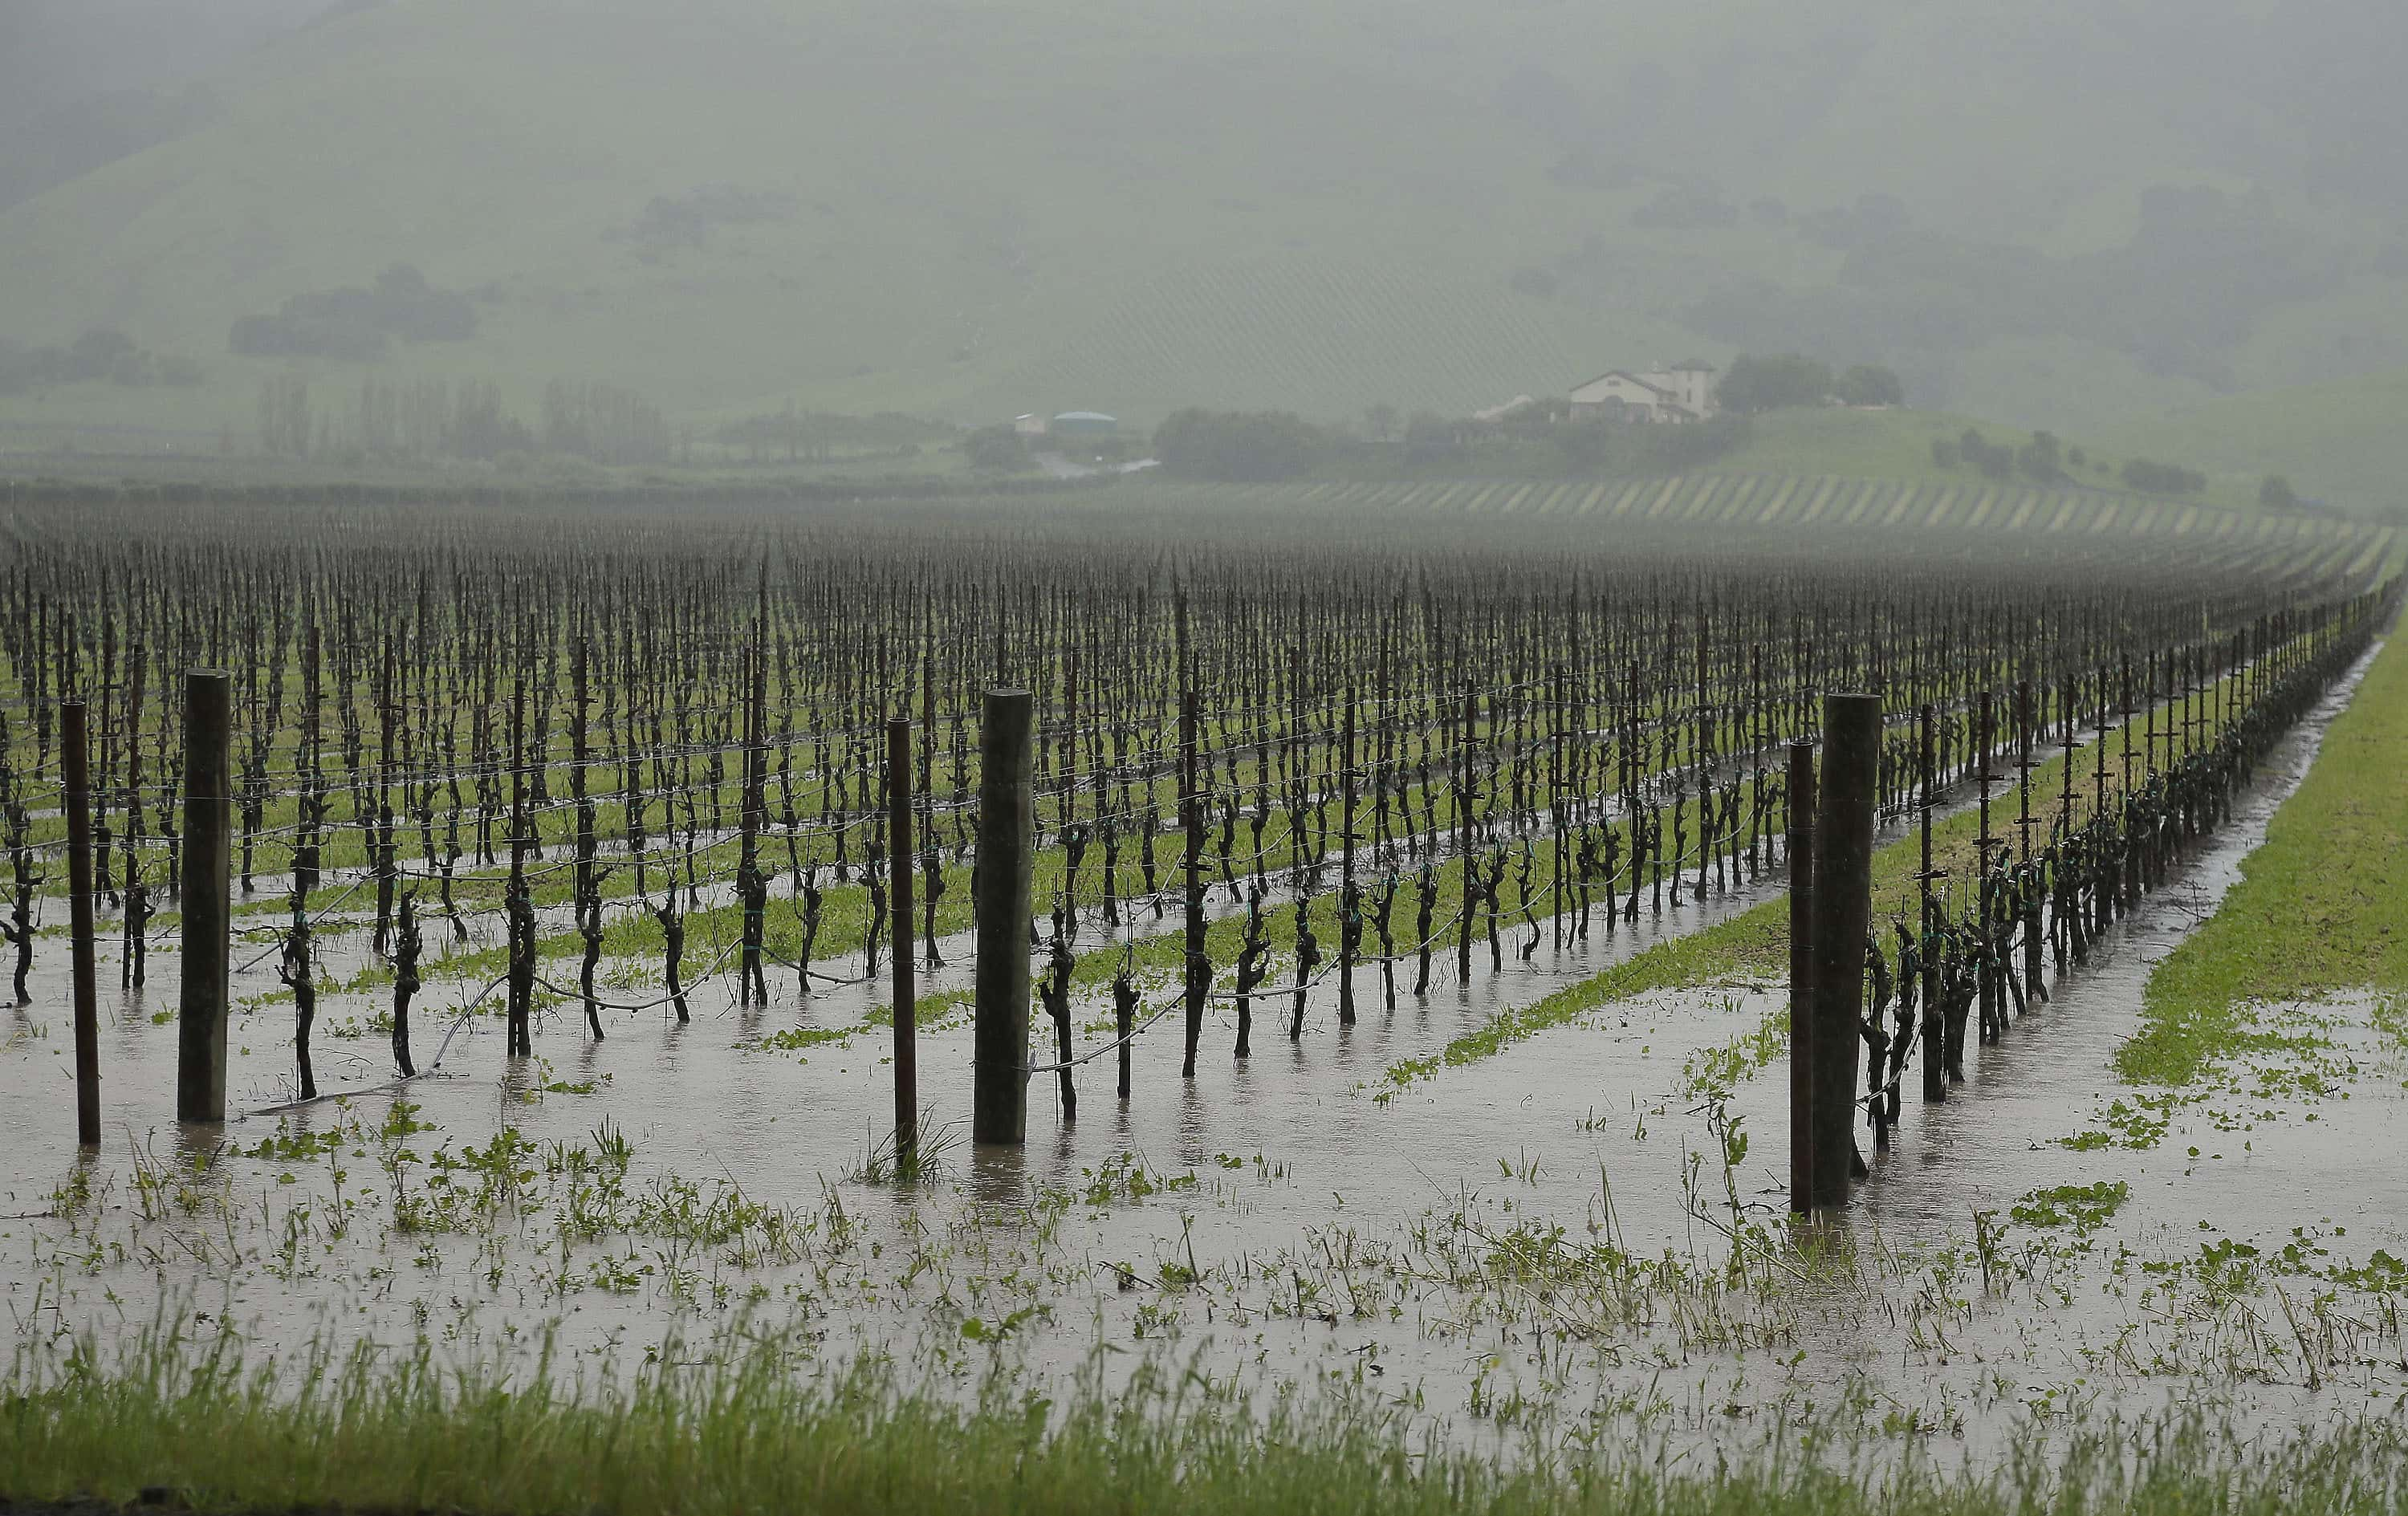 FILE - In this March 10, 2016, file photo, runoff from heavy rain flows into vineyards along Highway 121 with the Gloria Ferrer Caves and Vineyards in the background in Sonoma, Calif.  A heavy dousing of autumn rain in Northern California has lifted a quarter of the state out of drought, the highest percentage in more than three years, according to a new federal report. Water officials who oversaw mandatory water conservation by cities and towns emphasized three-fourths of the state remains in the five-year drought. (AP Photo/Eric Risberg, File)